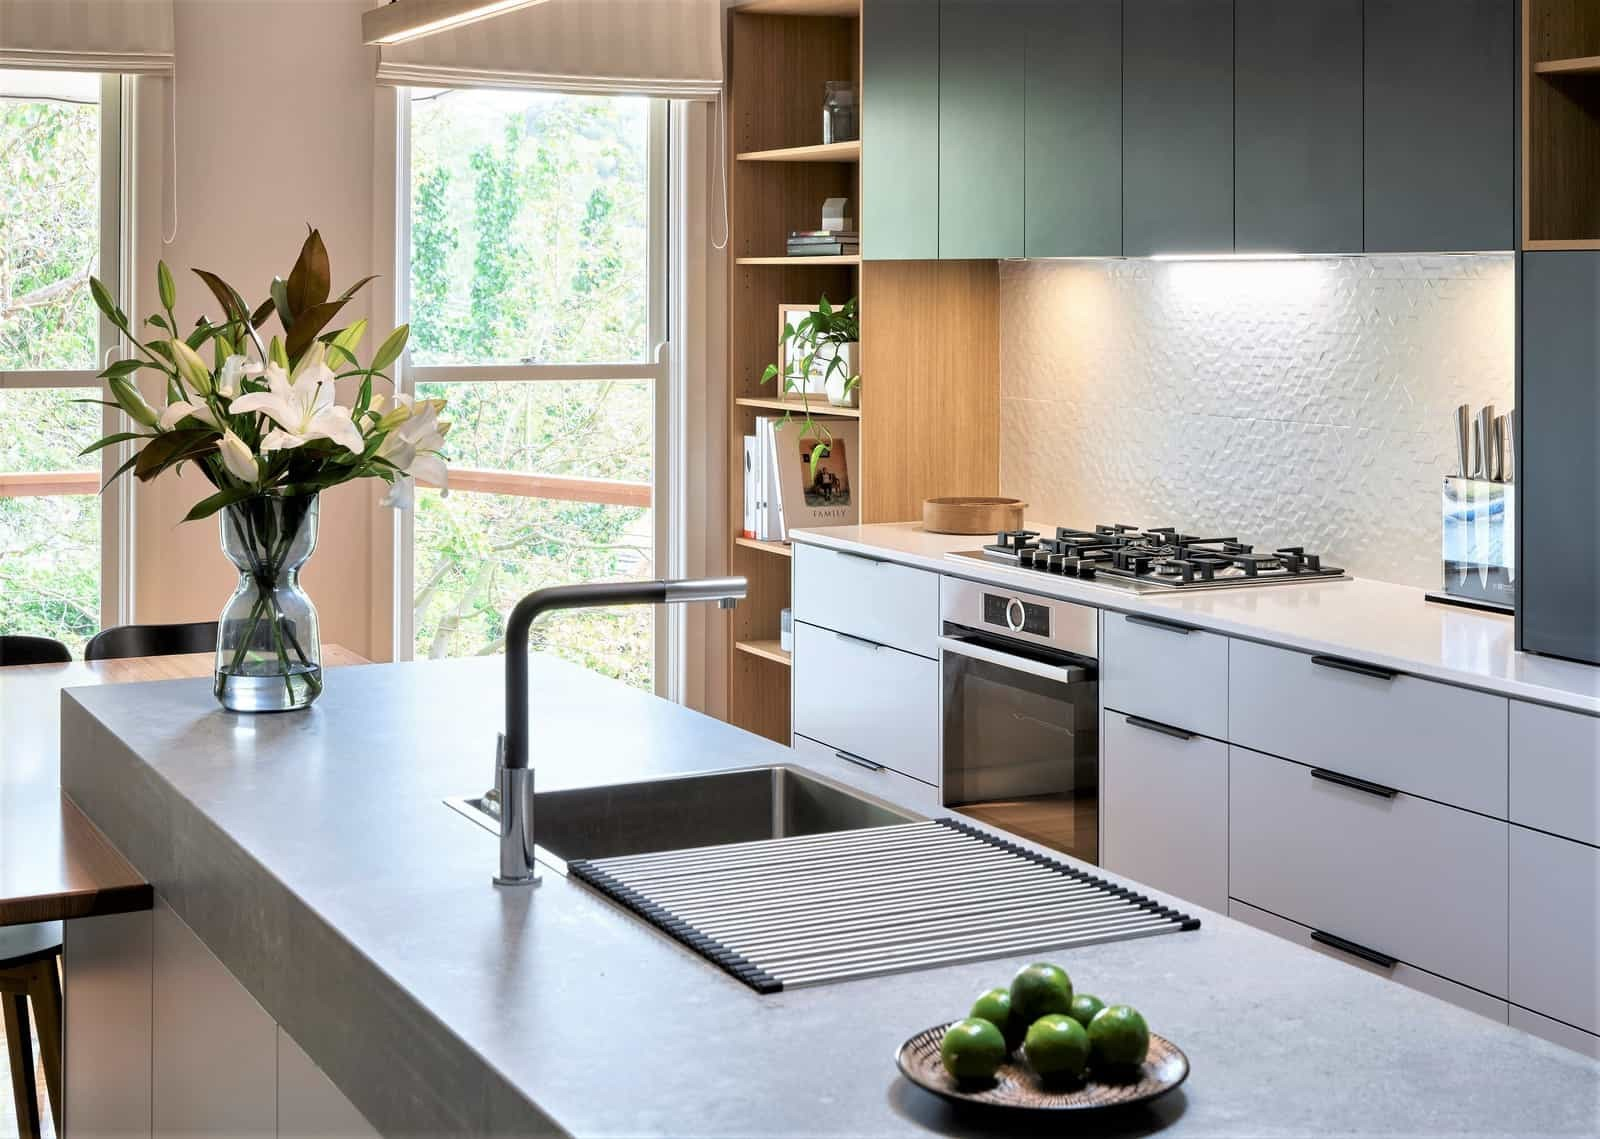 How To Earn Money By Getting Kitchen Renovations In Bankstown